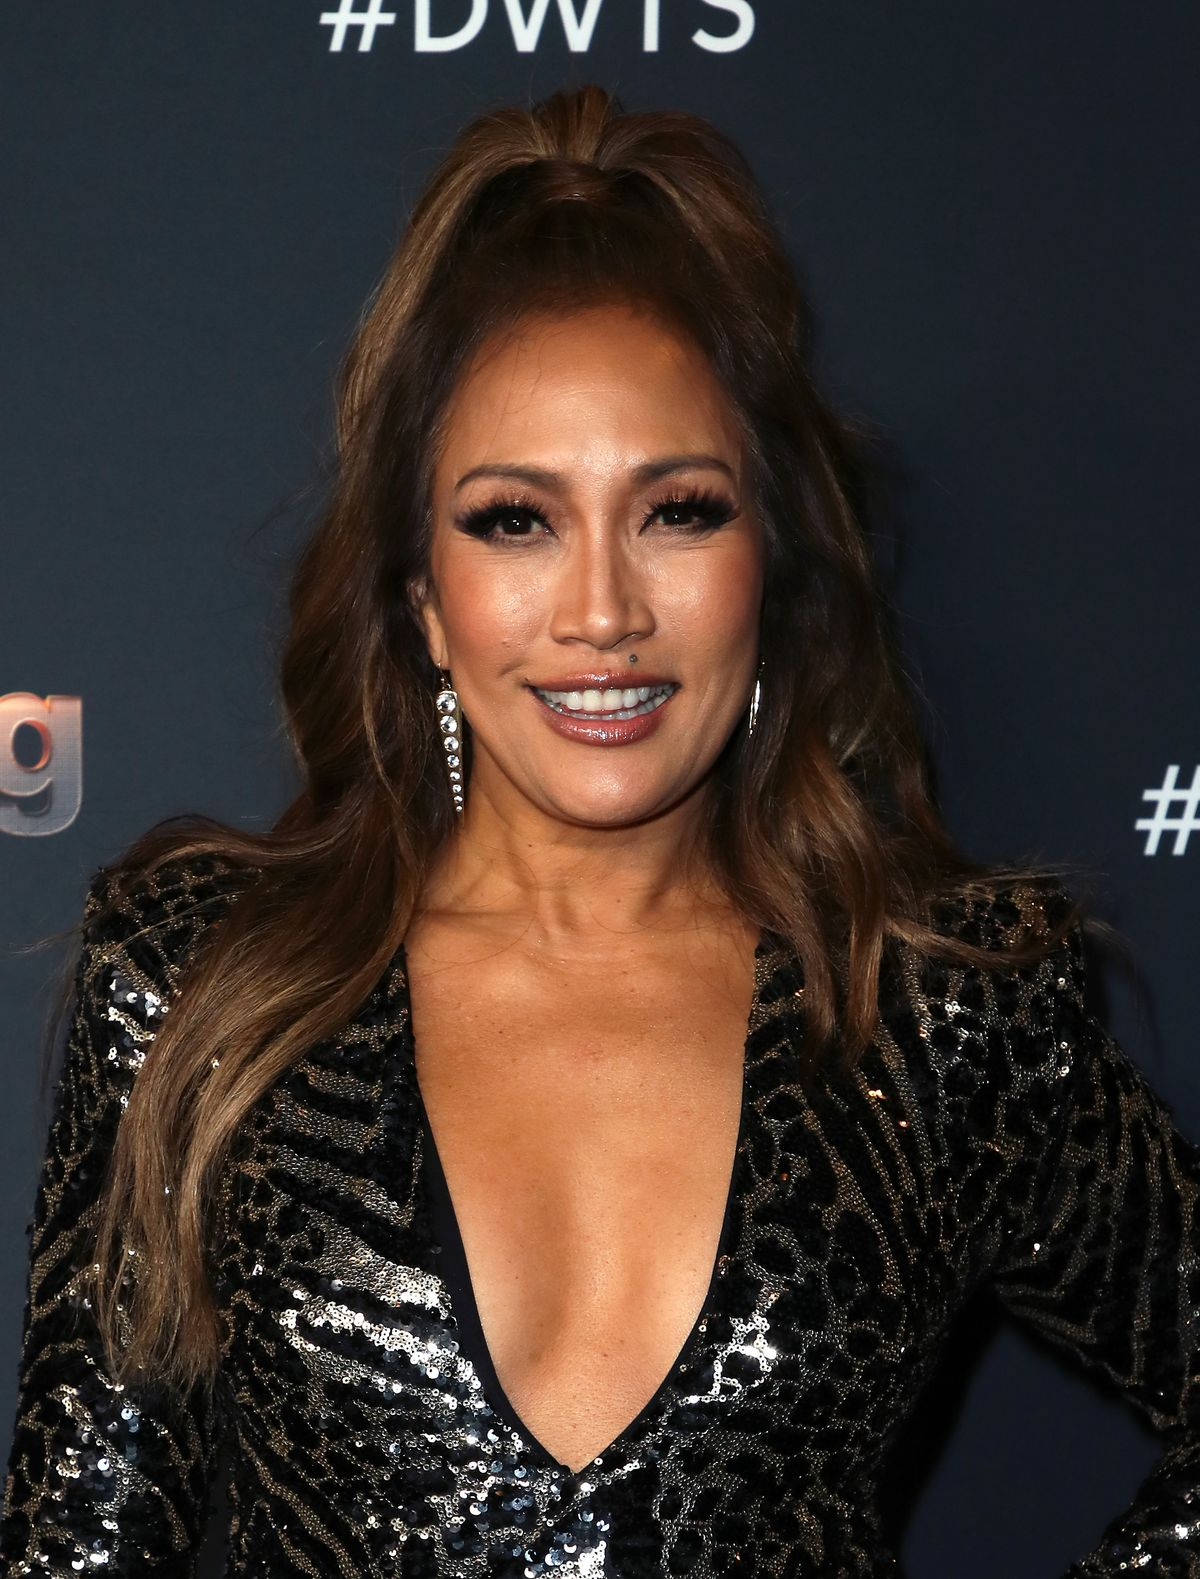 """Carrie Ann Inaba at the """"Dancing With The Stars"""" season 28 Top 6 Finalists event on November 04, 2019, in Los Angeles, California 